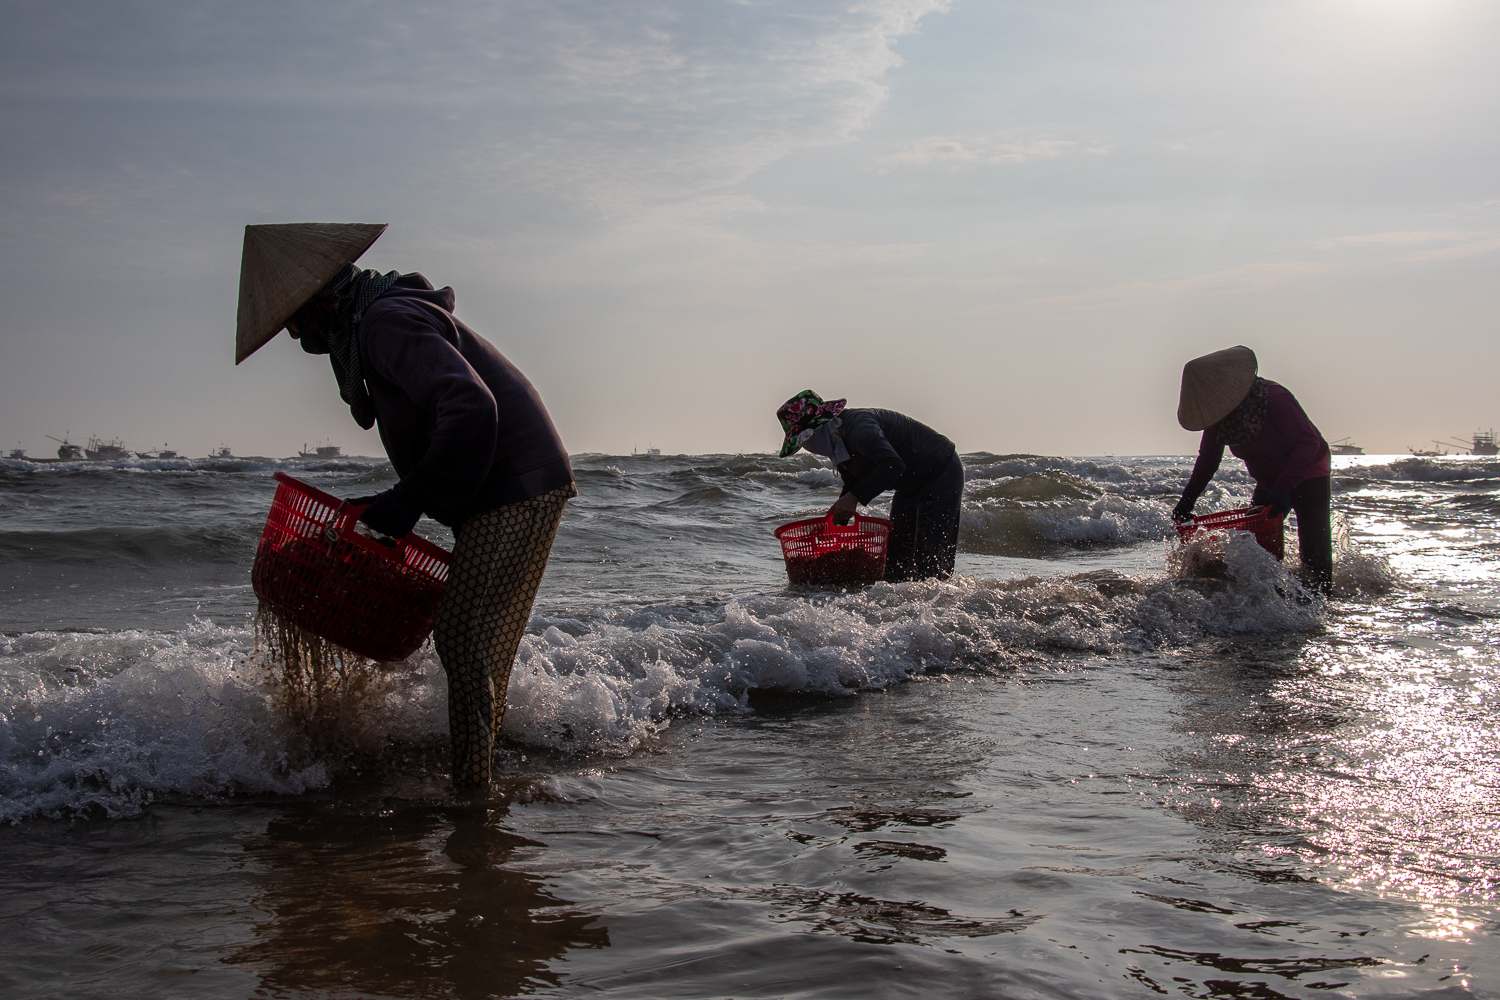 A photograph of Vietnamese ladies cleaning seafood on a beach in their signature hats.